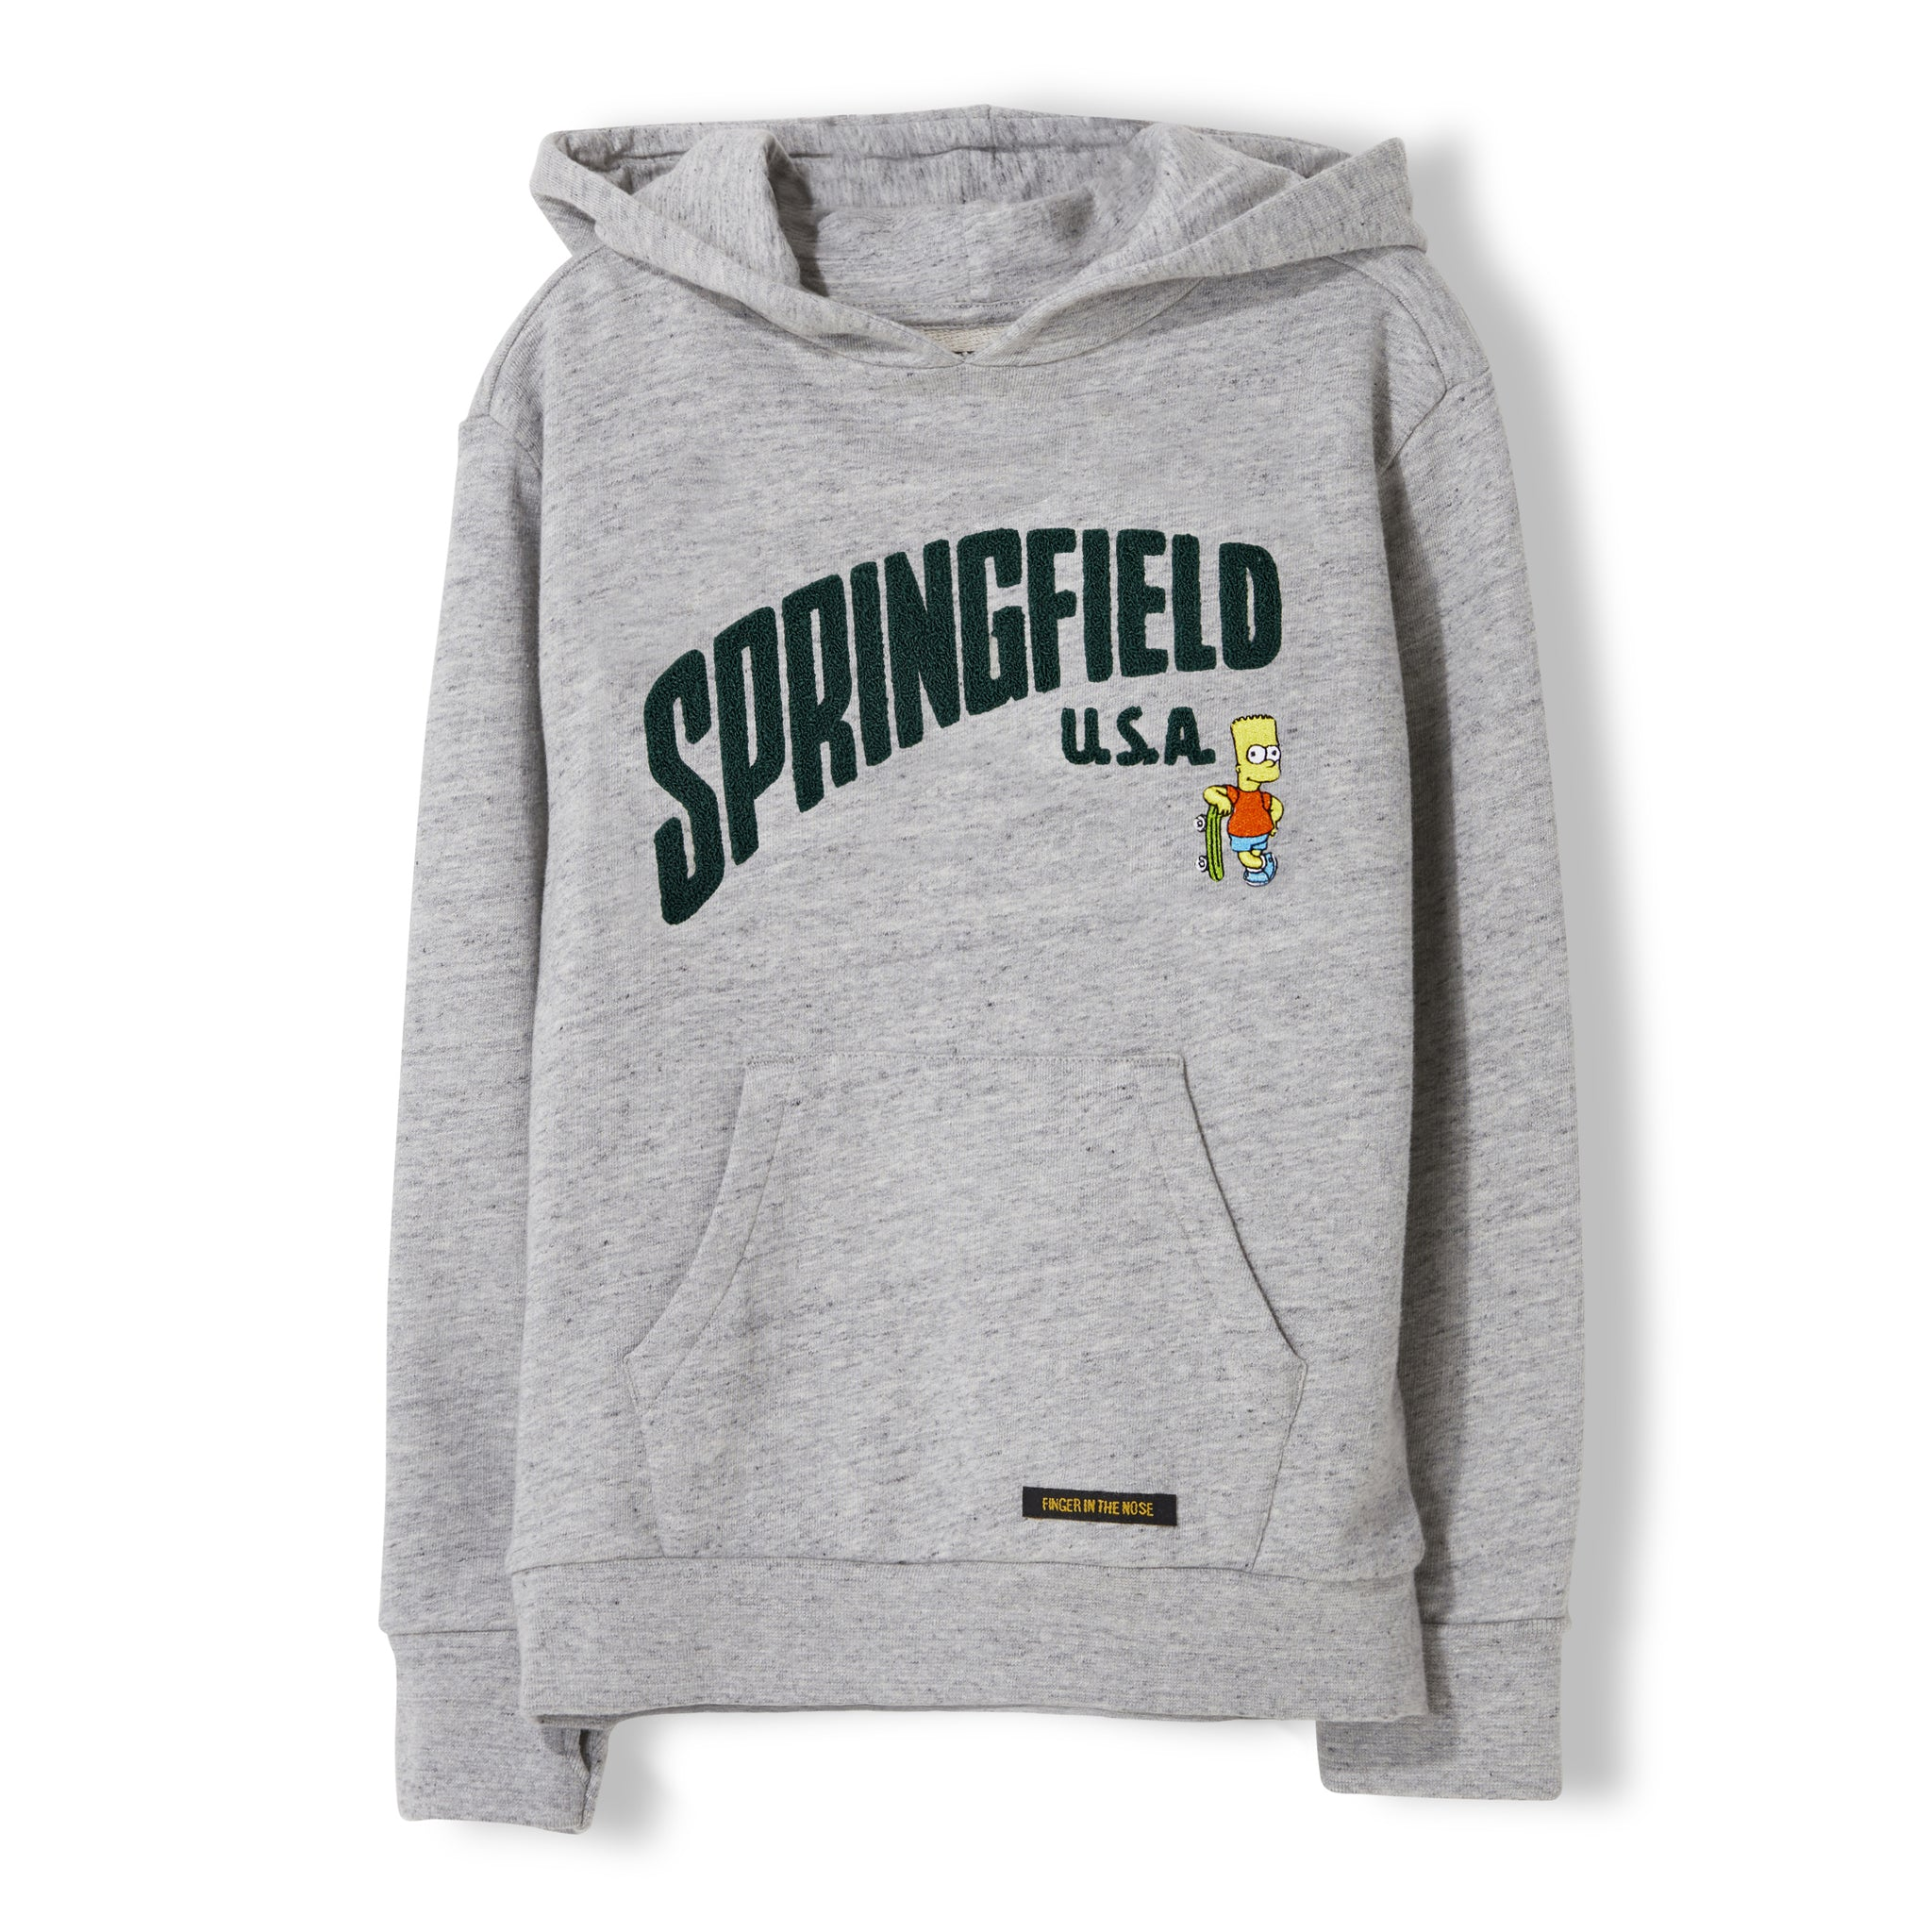 MELBOURNE Heather Cloud Springfield - Unisex Knitted Hoody 1